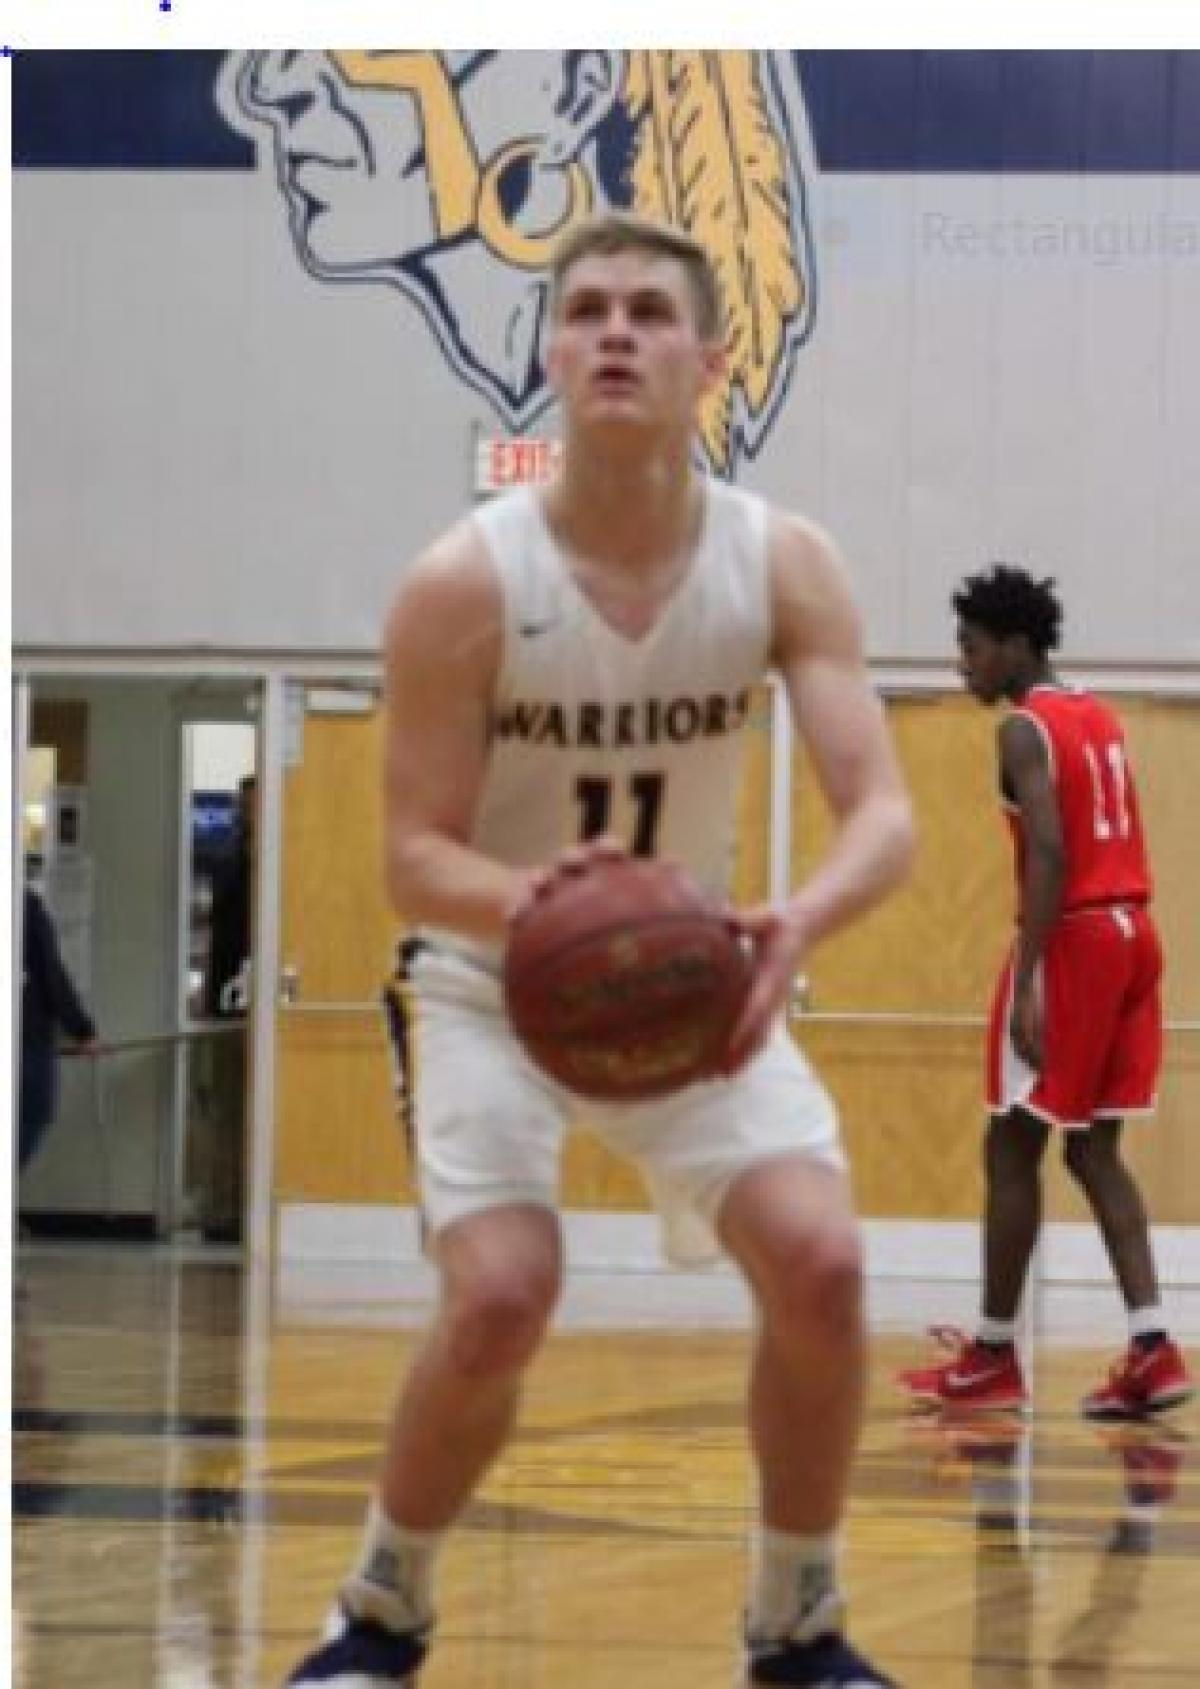 CONGRATULATIONS Brent Hoffmann for being selected to be on the 2020 WBCS All-Star Basketball Team